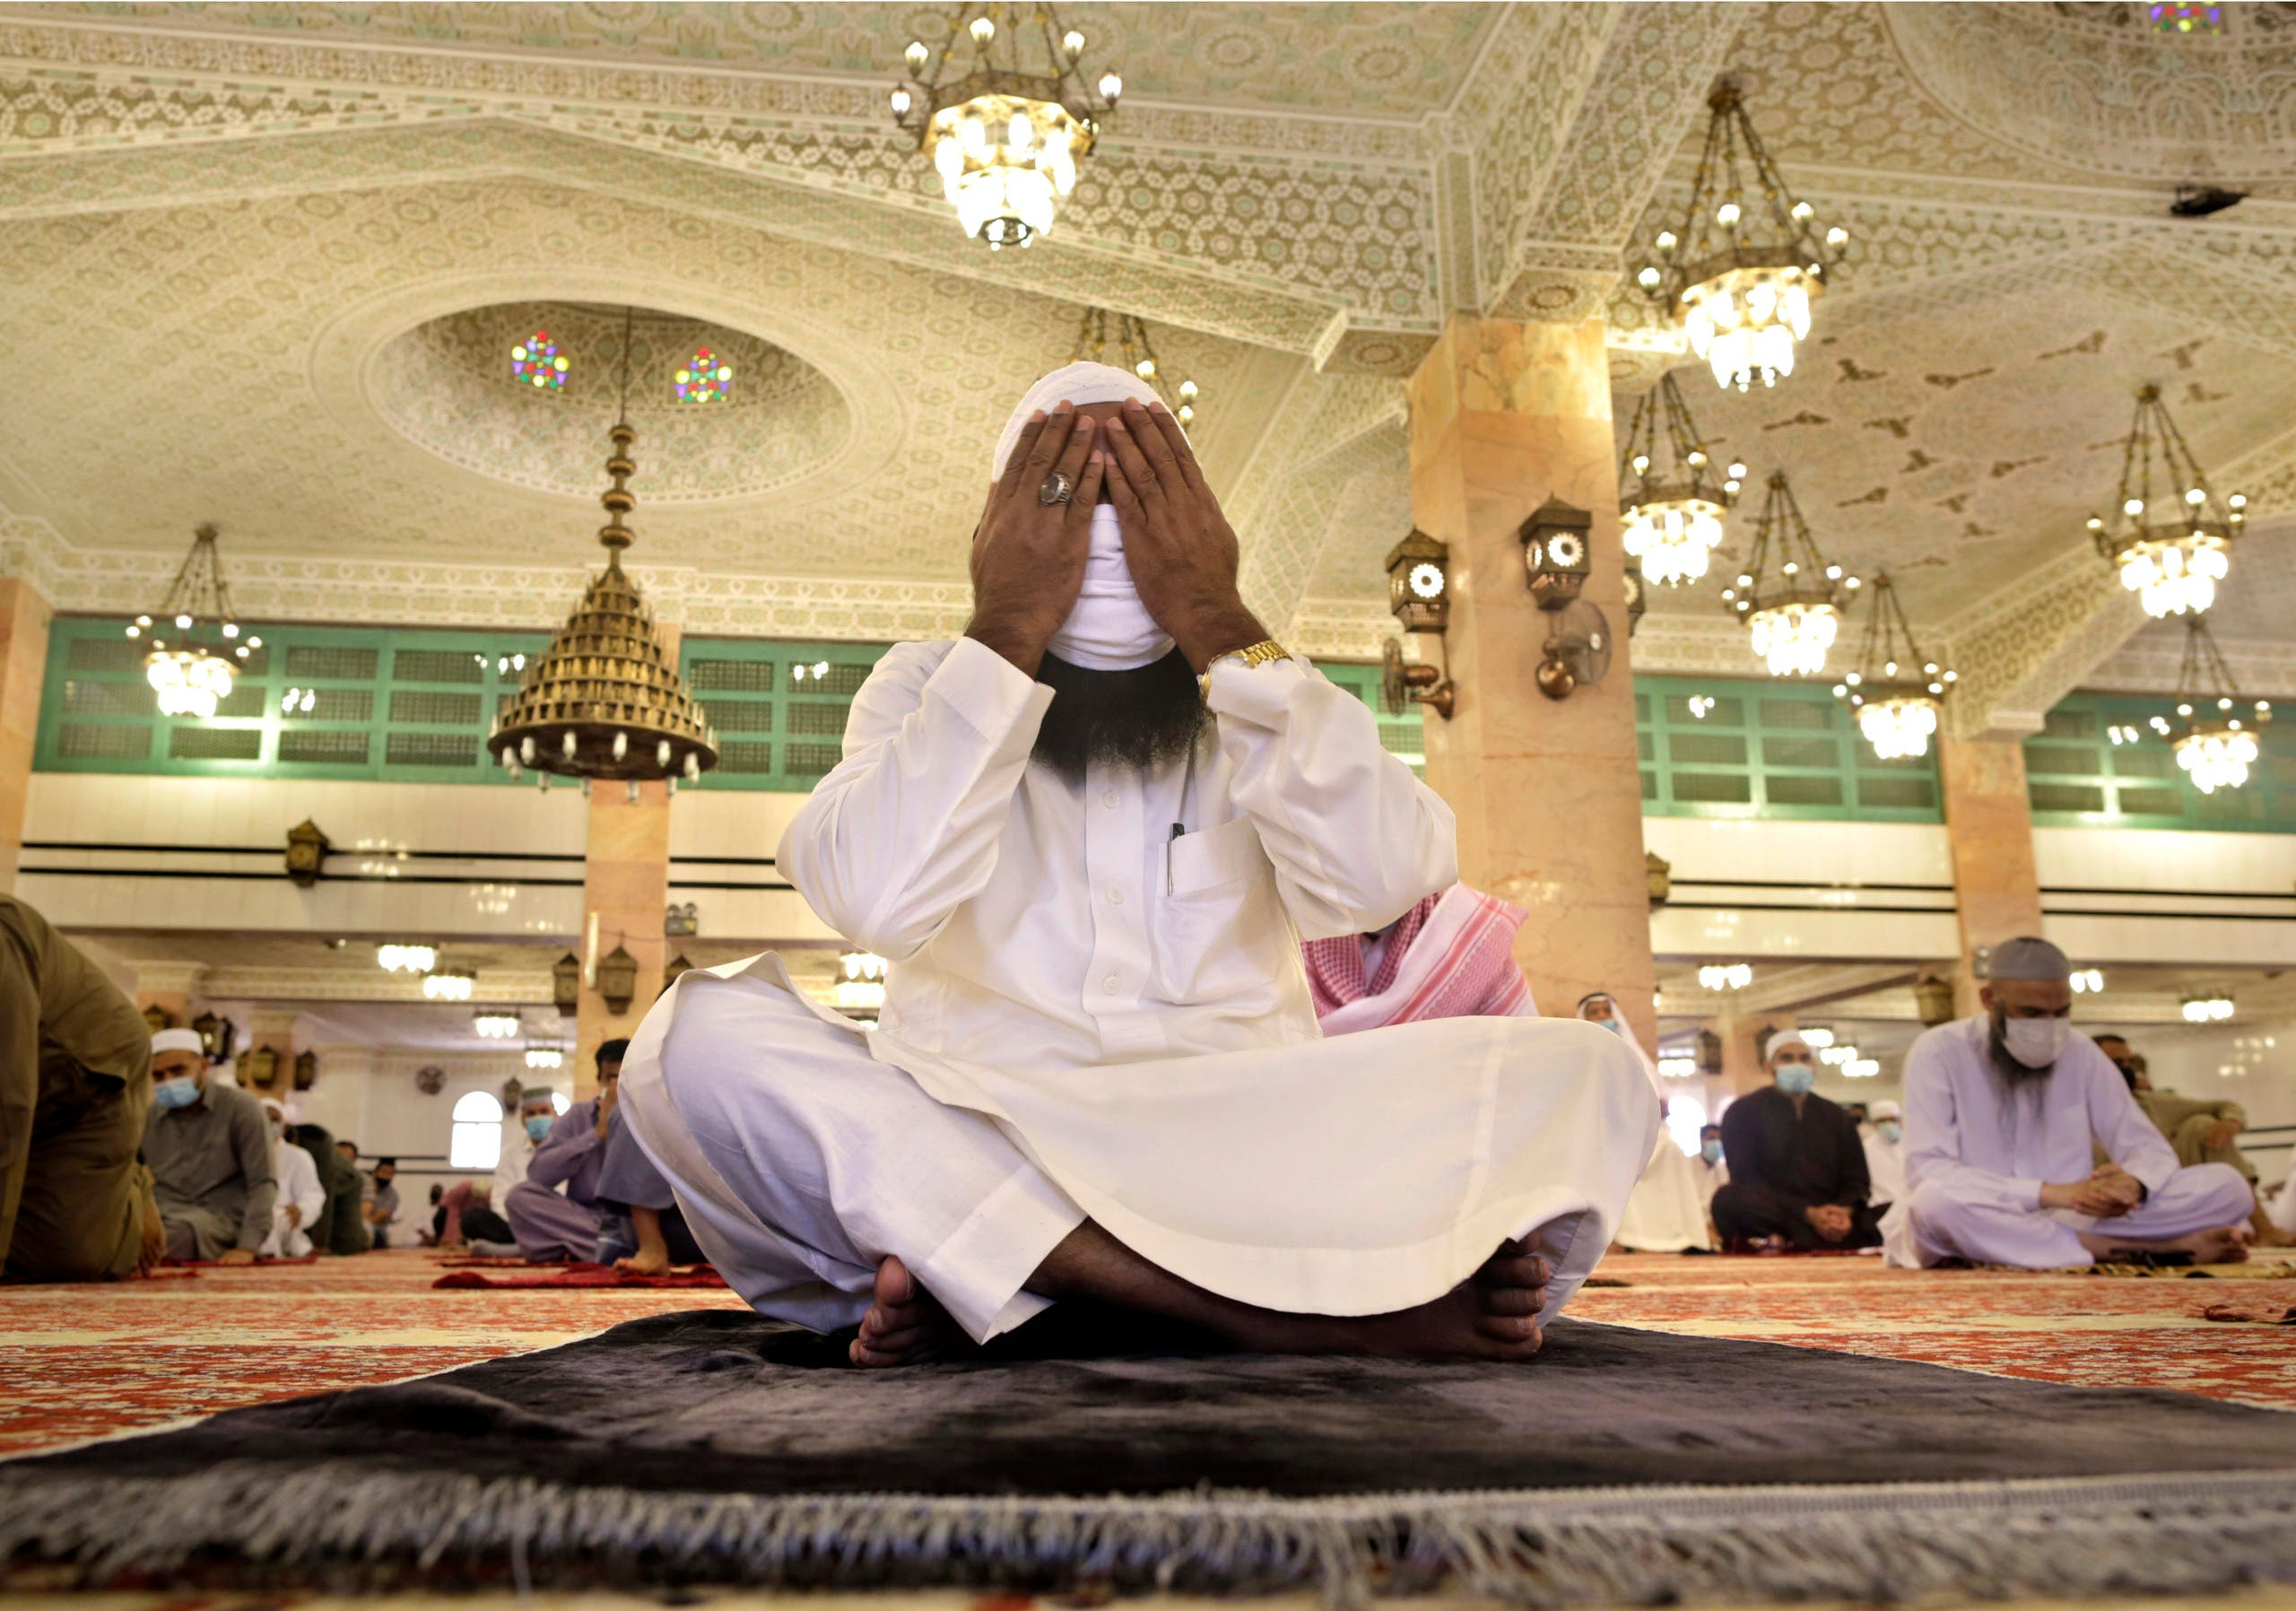 A Saudi worshipper wearing a face mask to prevent the spread of COVID-19, prays at the al-Mirabi Mosque in Jiddah, Saudi Arabia, Friday, July 10, 2020. (AP Photo/Amr Nabil)